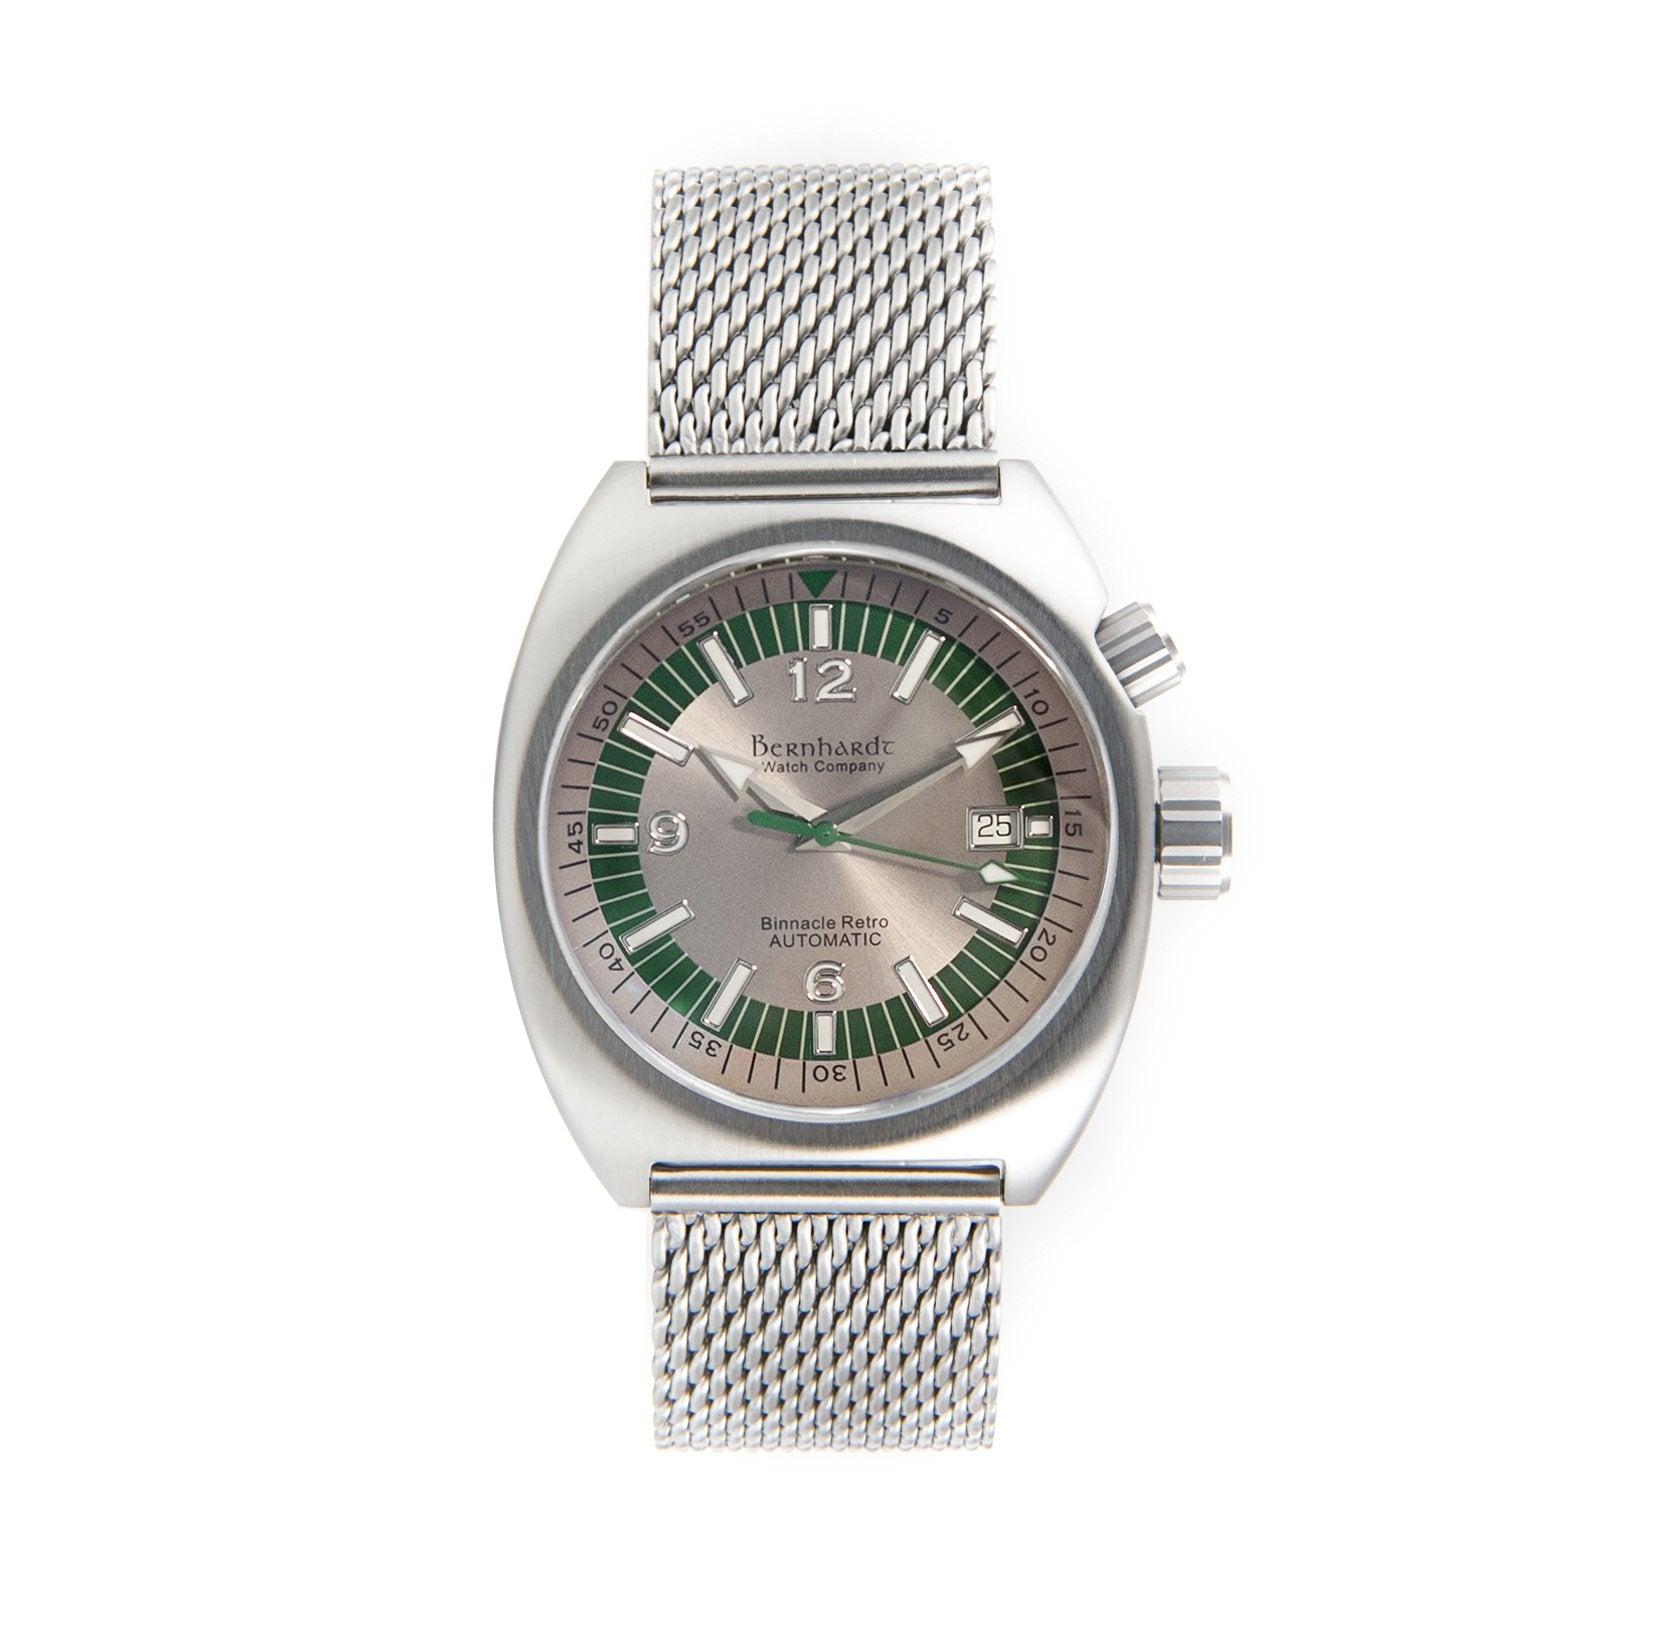 Binnacle Retro - Platinum/Green